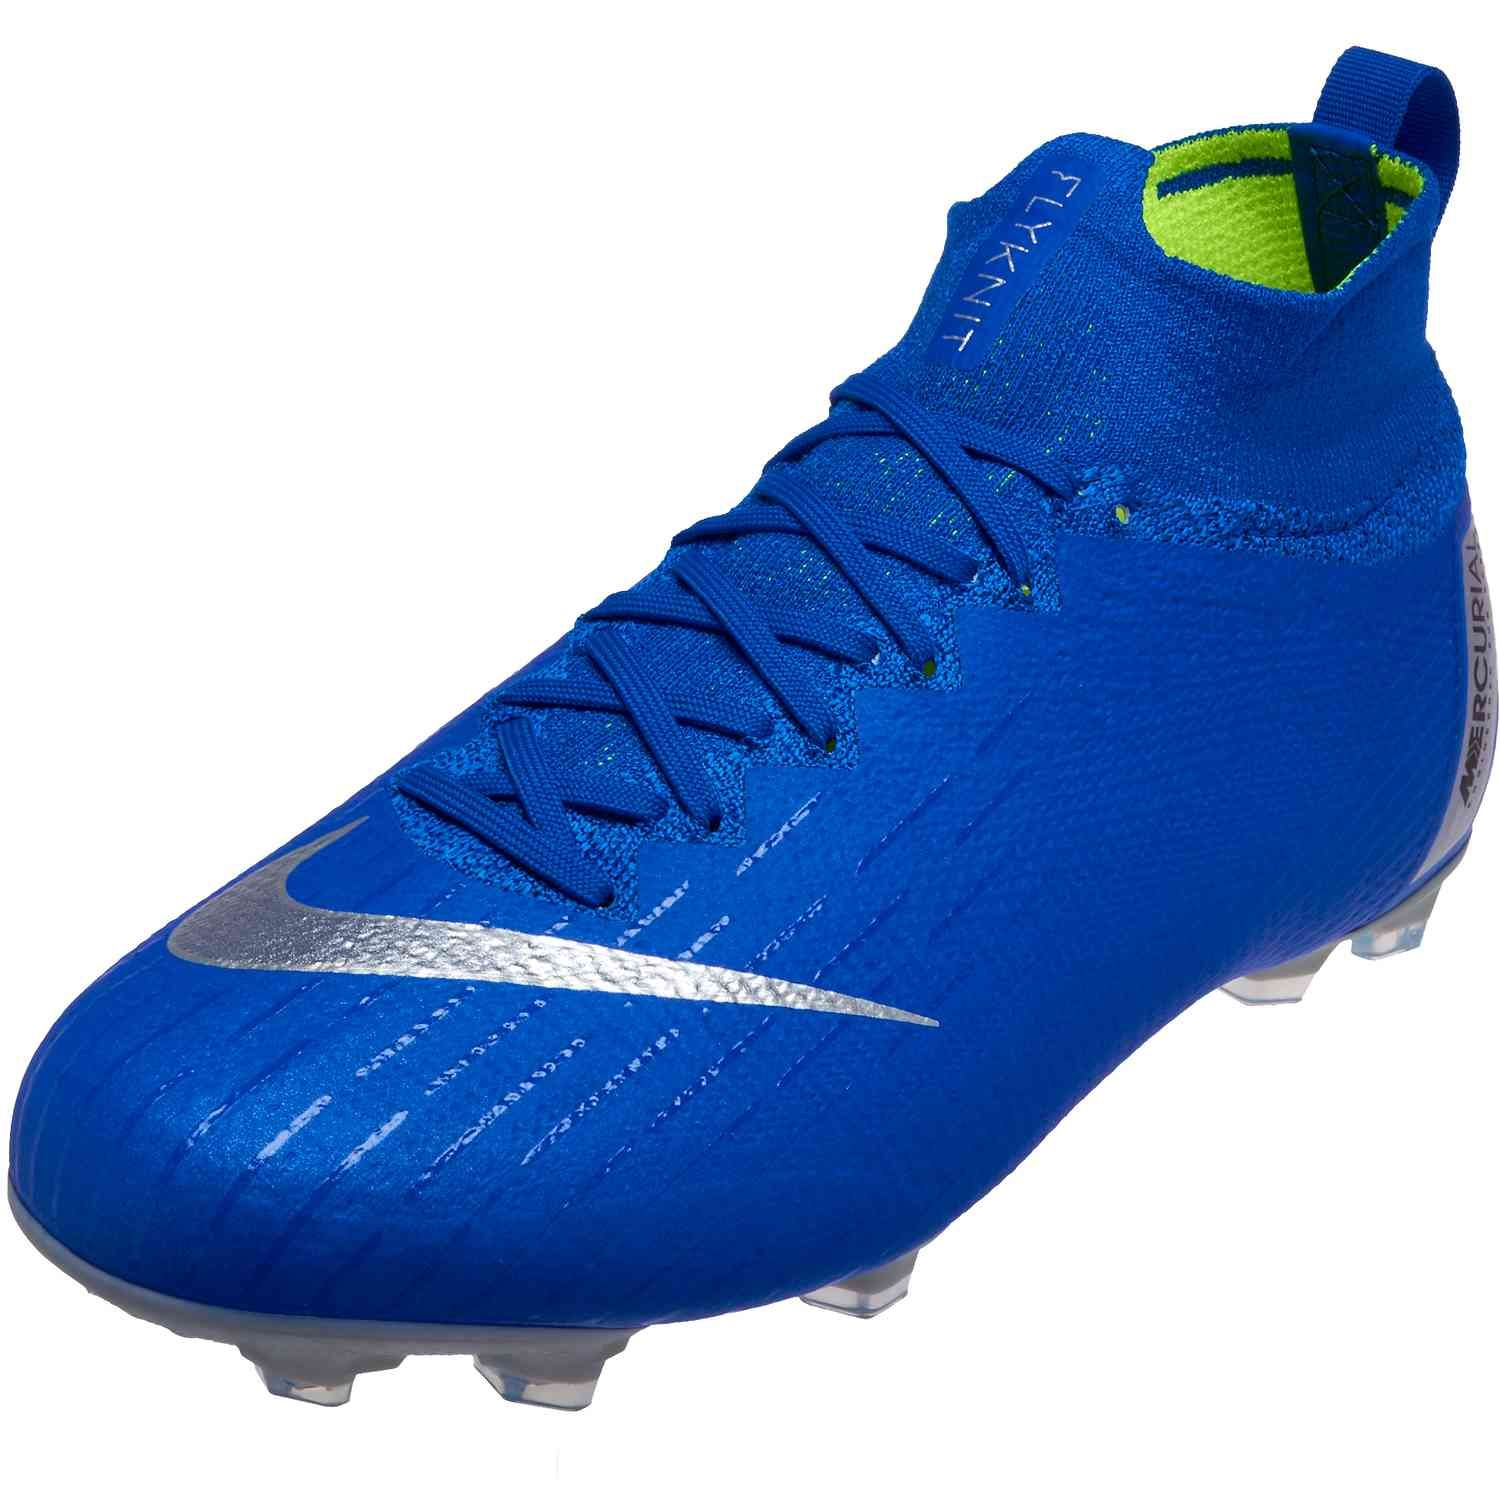 8c370cb83 Buy the Always Forward pack Kids Nike Superfly Elite 6 soccer cleats from  soccerpro.com right now!